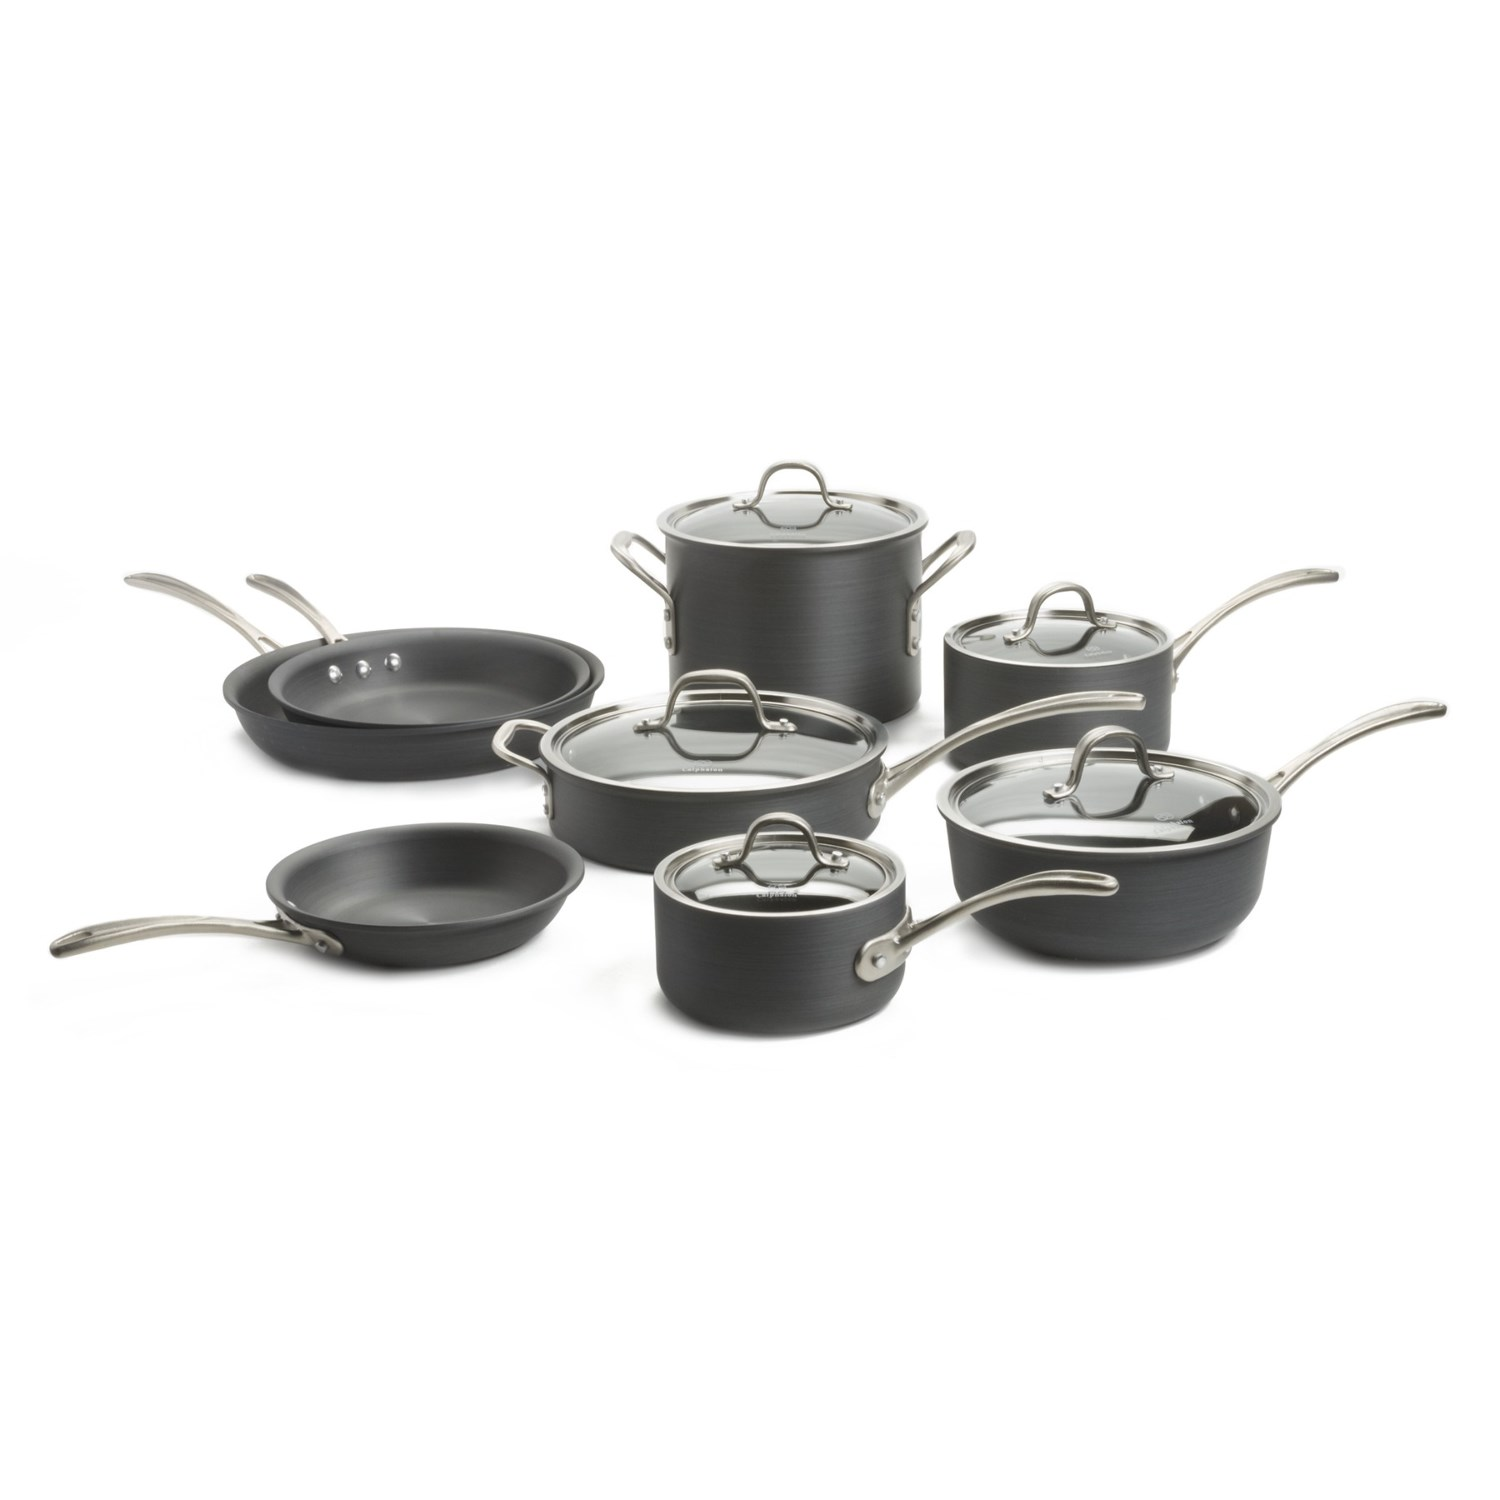 "1.5 qt. sauce pan with lid: 3-1/4"" high; 6"" diameter 10"" omelette pan 12"" omelette pan 13 piece set includes: 2.5 qt. sauce pan with lid: 4"" high; 7"" diameter 3 qt. chef's pan with lid: 3-1/2"" high; 9"" diameter 3 qt. saute pan with lid: 2-1/2"" high; 10"" diameter 6 qt. stock pot with lid: 6-1/2"" high; 9"" diameter 8"" omelette pan Calphalon is a leading brand in gourmet cookware, known for developing technologies that enhance the cooking experience for professional chefs and amateurs alike Care: Hand wash Closeouts. Heavy-duty pans for the professional chef, Calphalon's Commercial Hard-Anodized 13-piece cookware set prepares everything from delicate omelettes to pot roasts and paella -- with naturally non-stick surfaces approved for use with any utensils. Extra-long handles improve safety Hard-anodized aluminum is perfect for searing and deglazing Made in China Material: Hard-anodized aluminum, stainless steel, tempered glass Natural non-stick surface is chemical-free and approved for use with any utensils without scratching Stay-cool handles Stovetop, oven and broiler safe Tempered glass lids are oven safe US shipments only Weight: 27 lb. 4 oz."